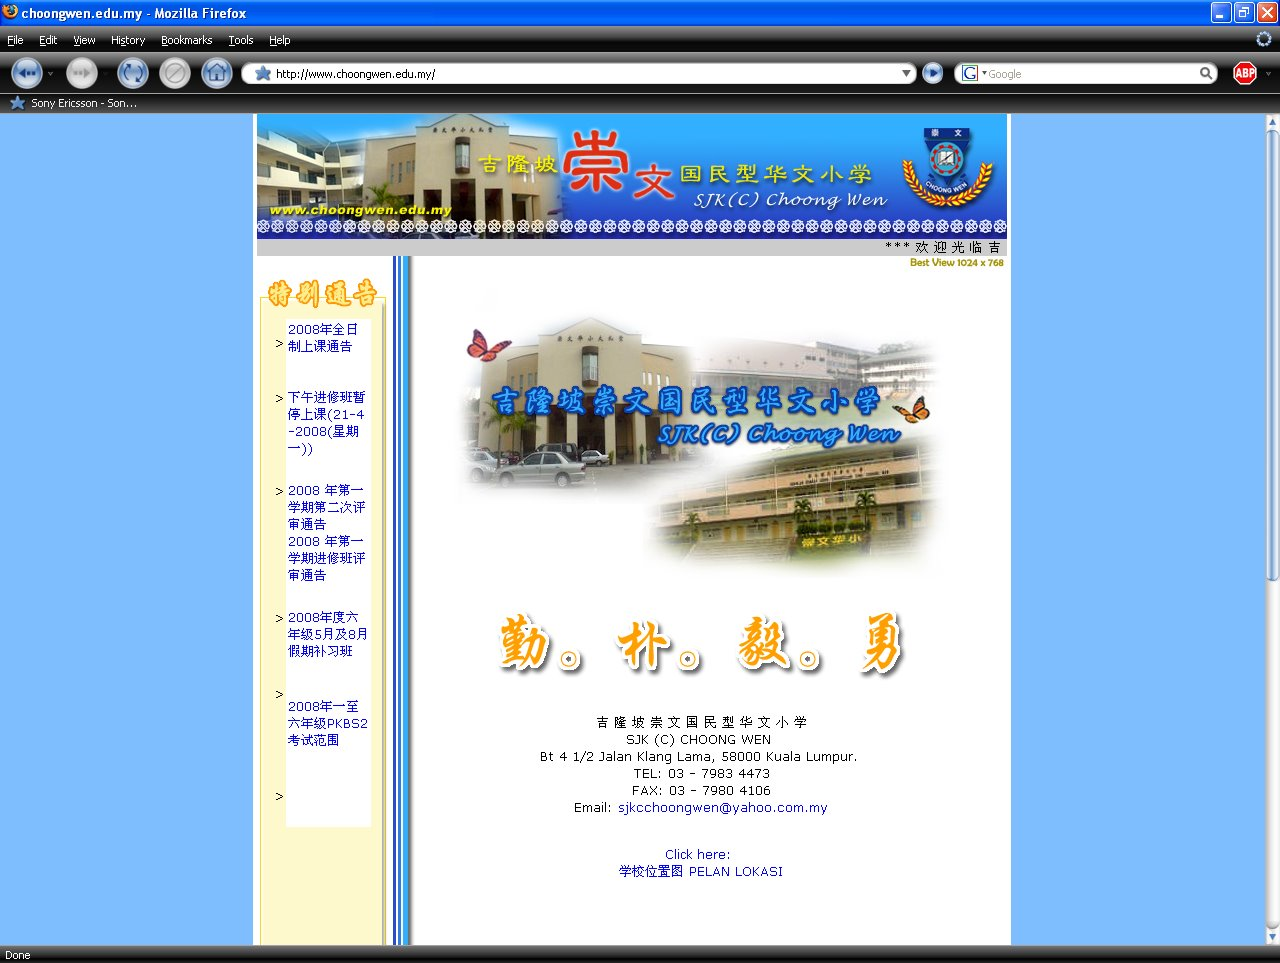 [choong+wen+web+page+2.bmp]